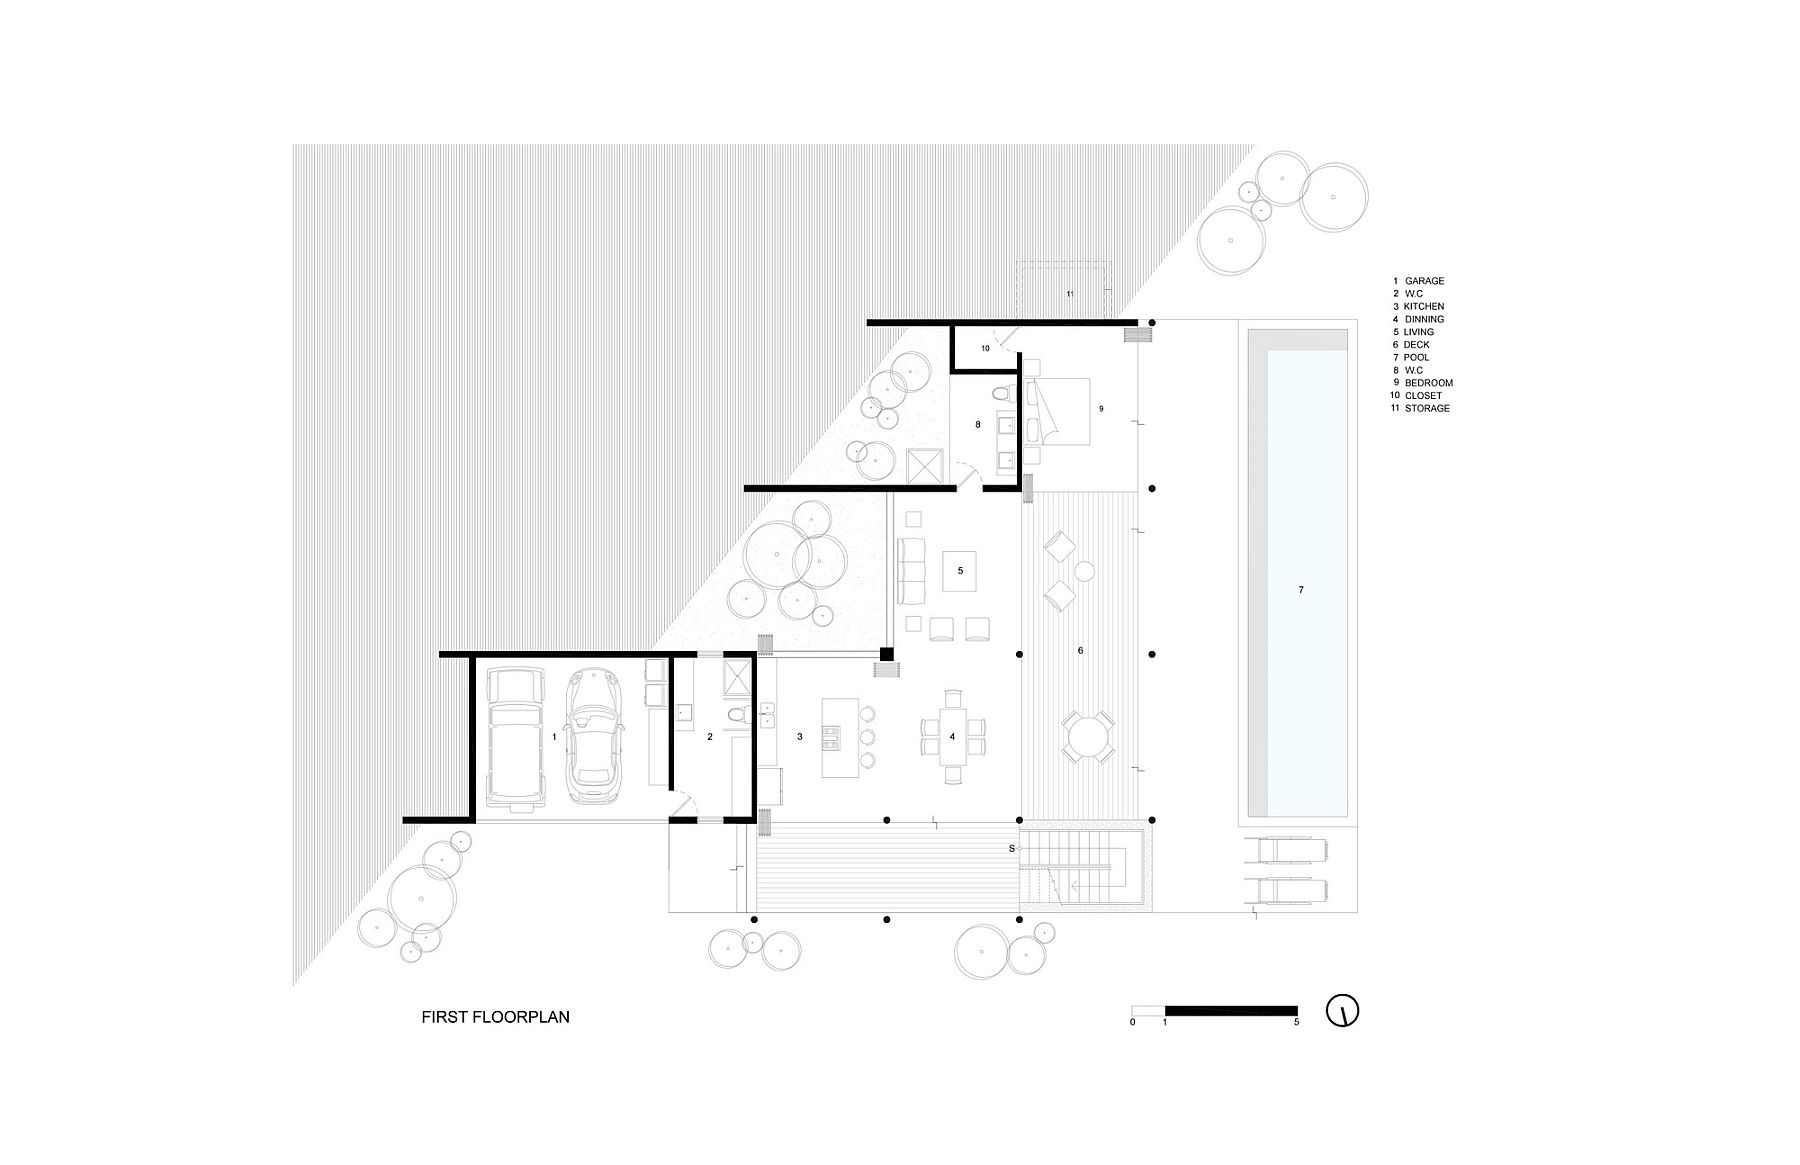 First level floor plan with open living area